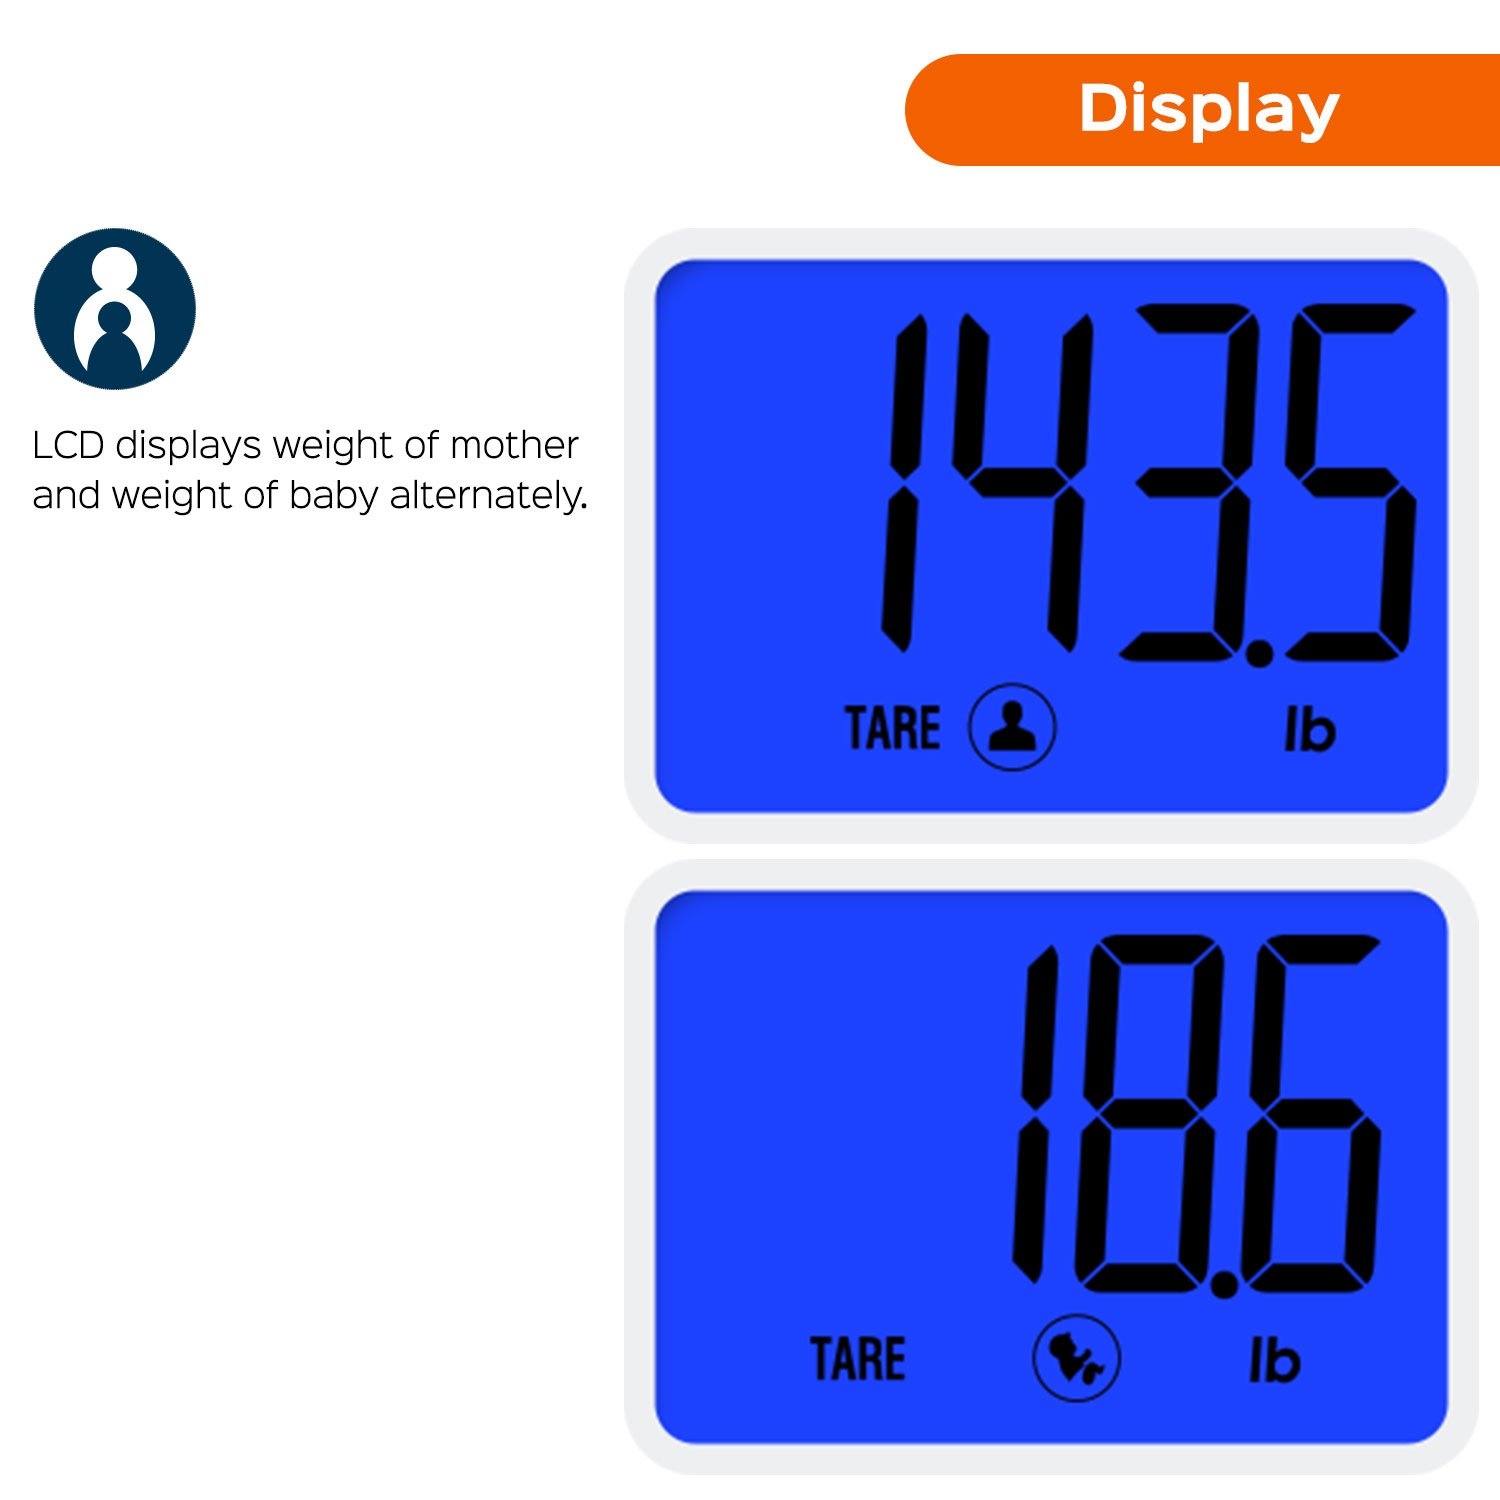 Amazoncom Smart Weigh Smart Tare Digital Body Weight Bathroom - Large display digital bathroom scales for bathroom decor ideas